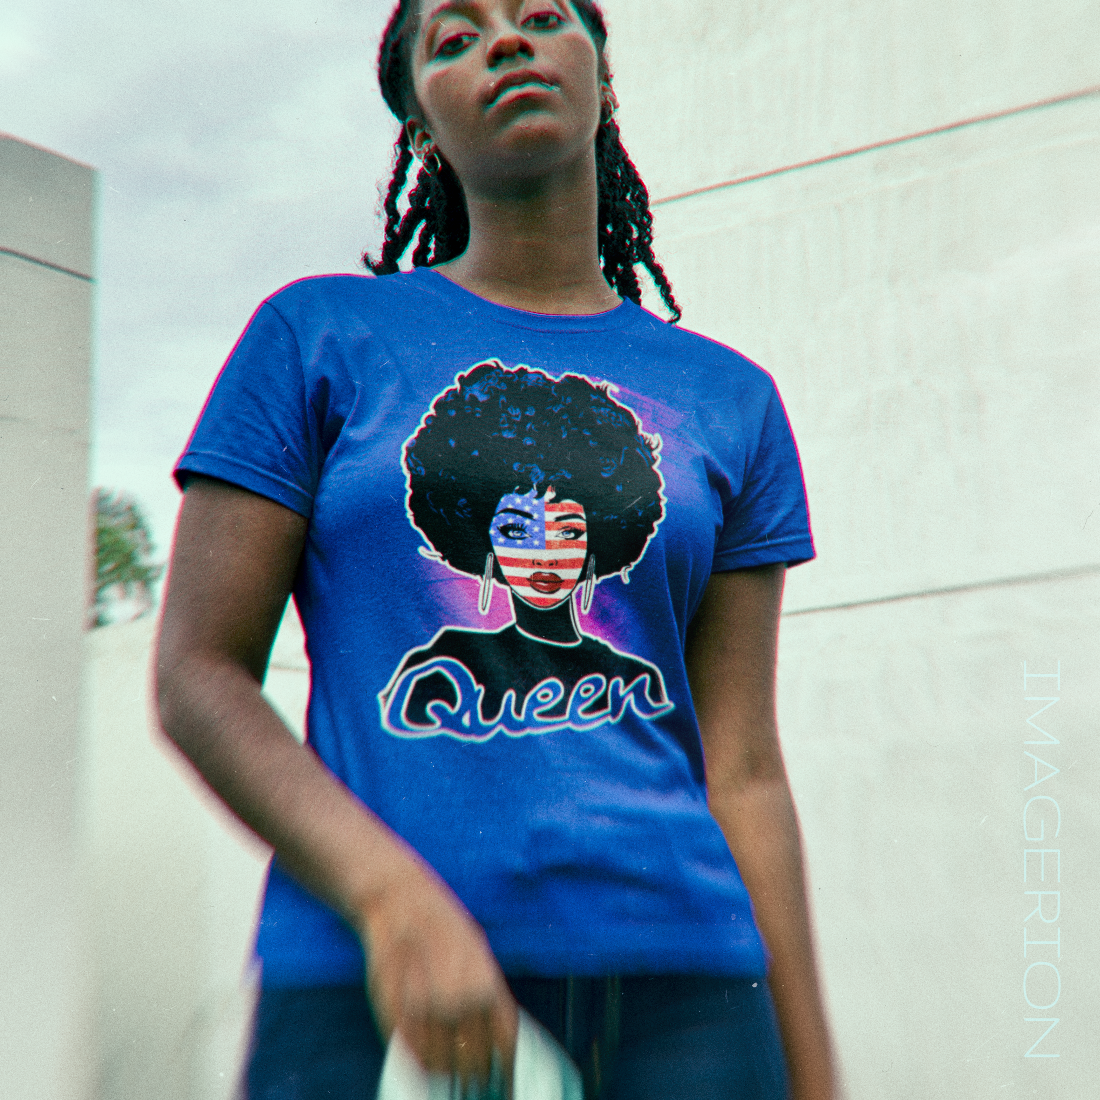 Black woman wearing an blue T-shirt with black woman portrait, face painted with a USA Flag, Queen text at the bottom